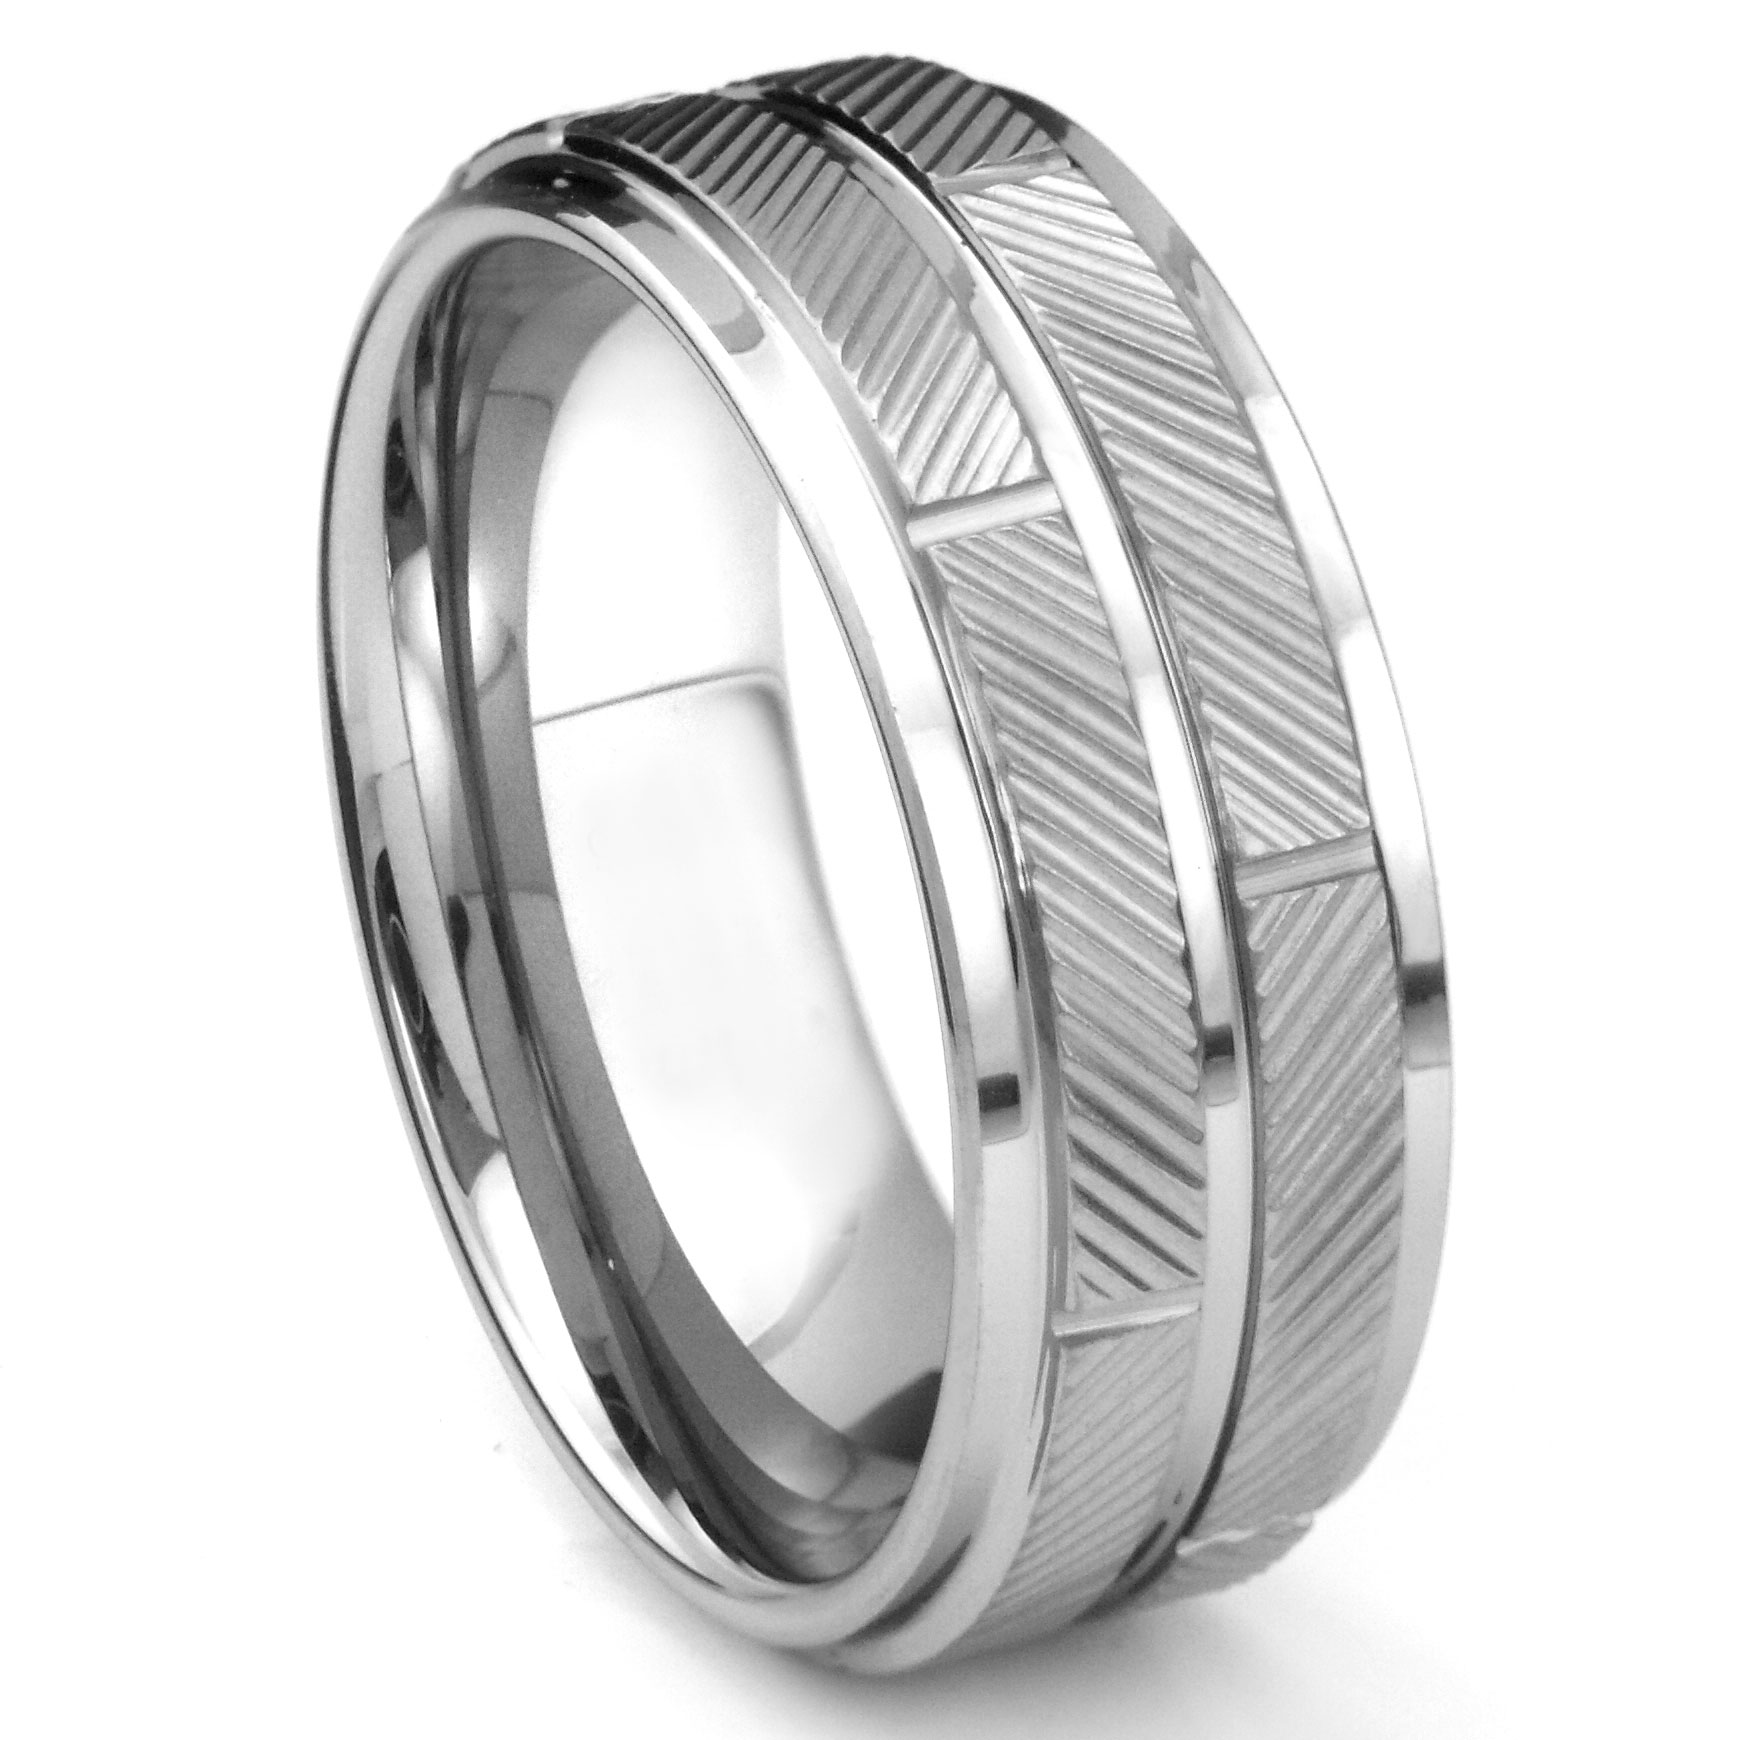 tungsten carbide diamond cut wedding band ring. Black Bedroom Furniture Sets. Home Design Ideas